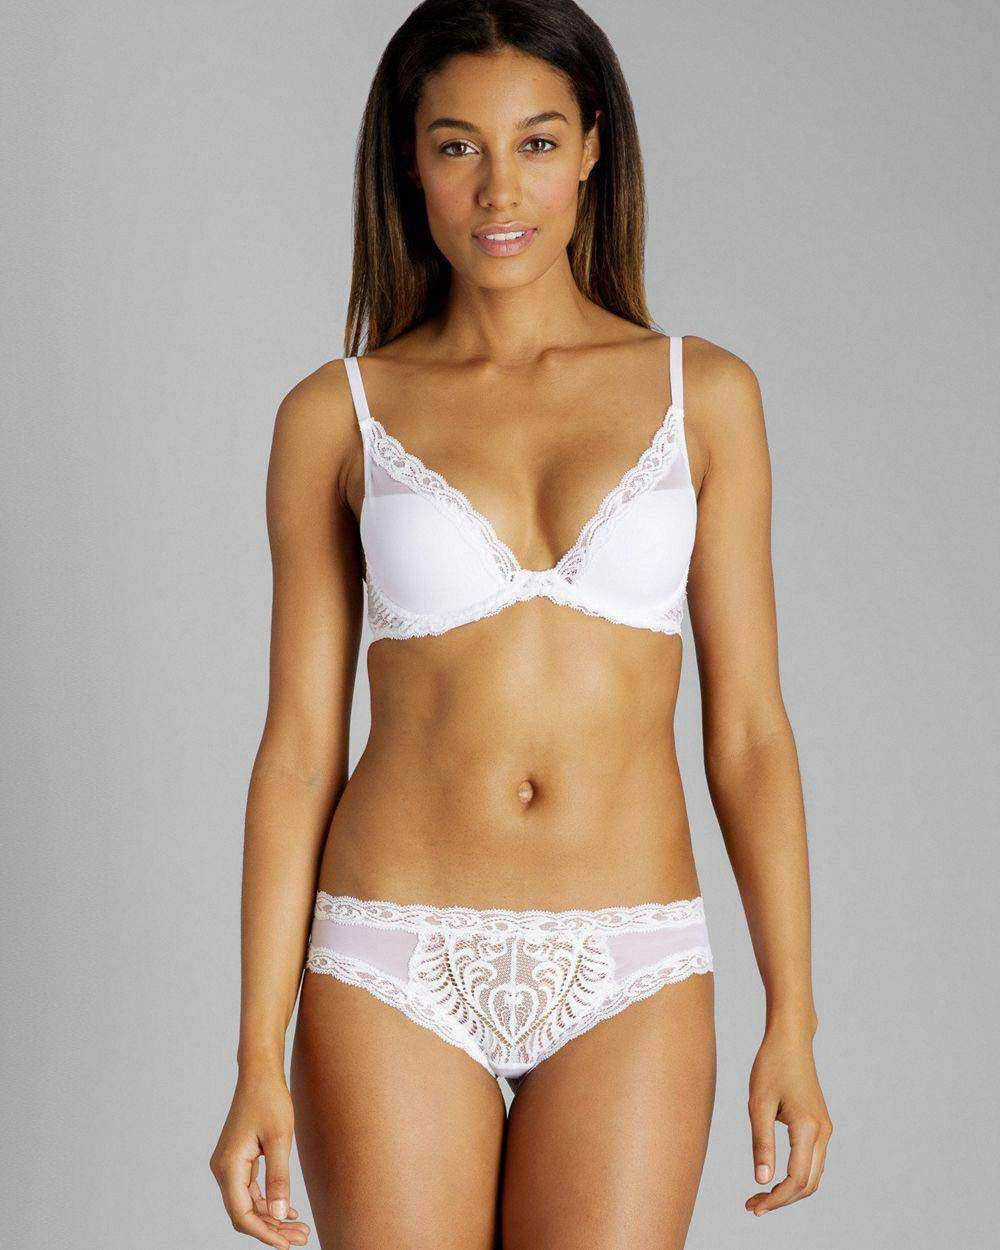 a593c22aa2 Lyst - Natori Feathers Contour Plunge Bra in White